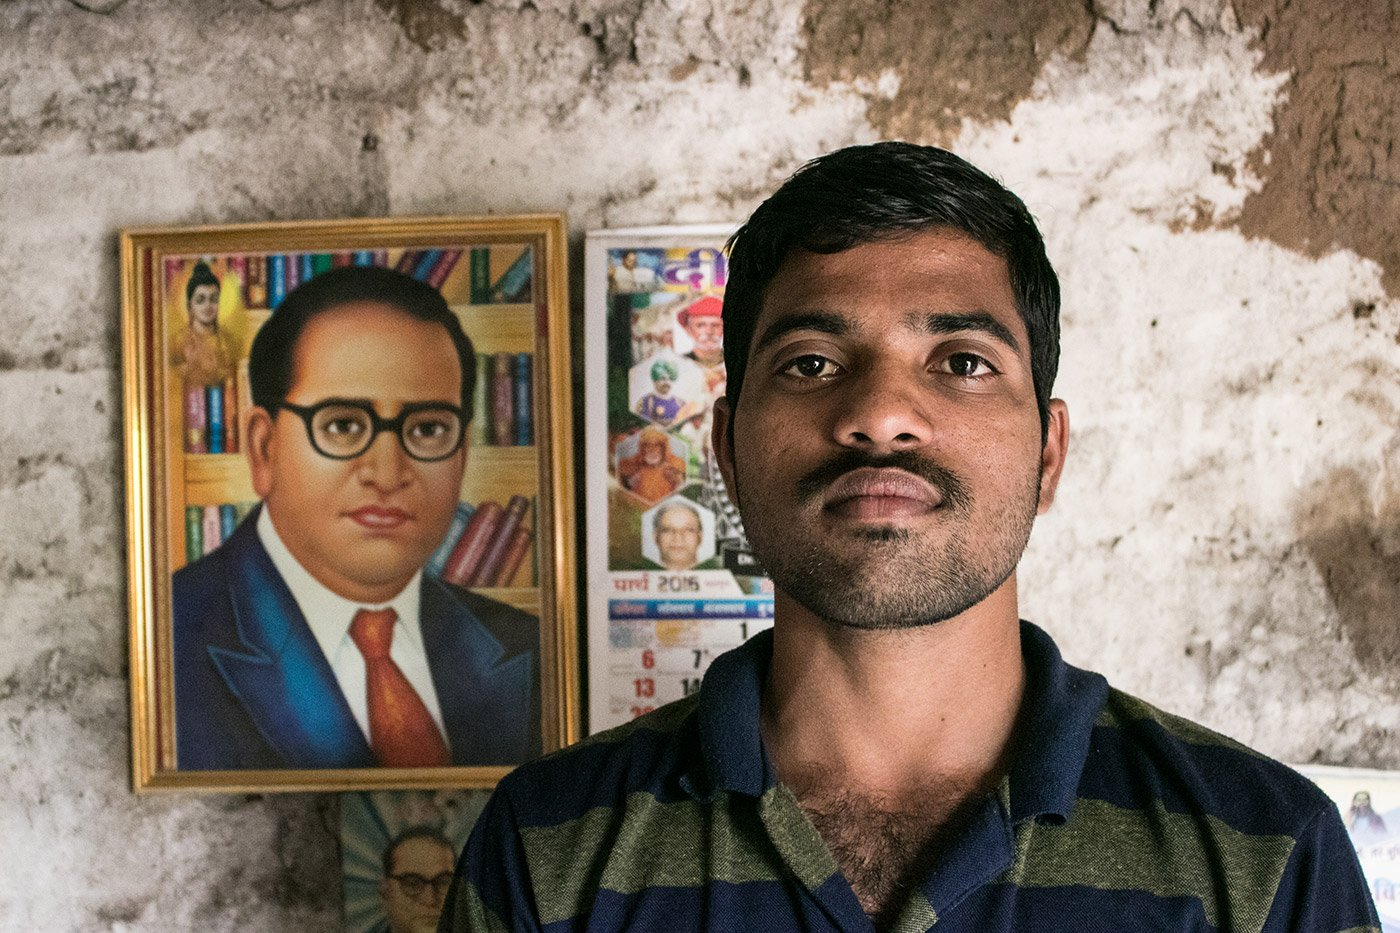 A young man standing in front of a framed illustration of Dr B. R. Ambedkar